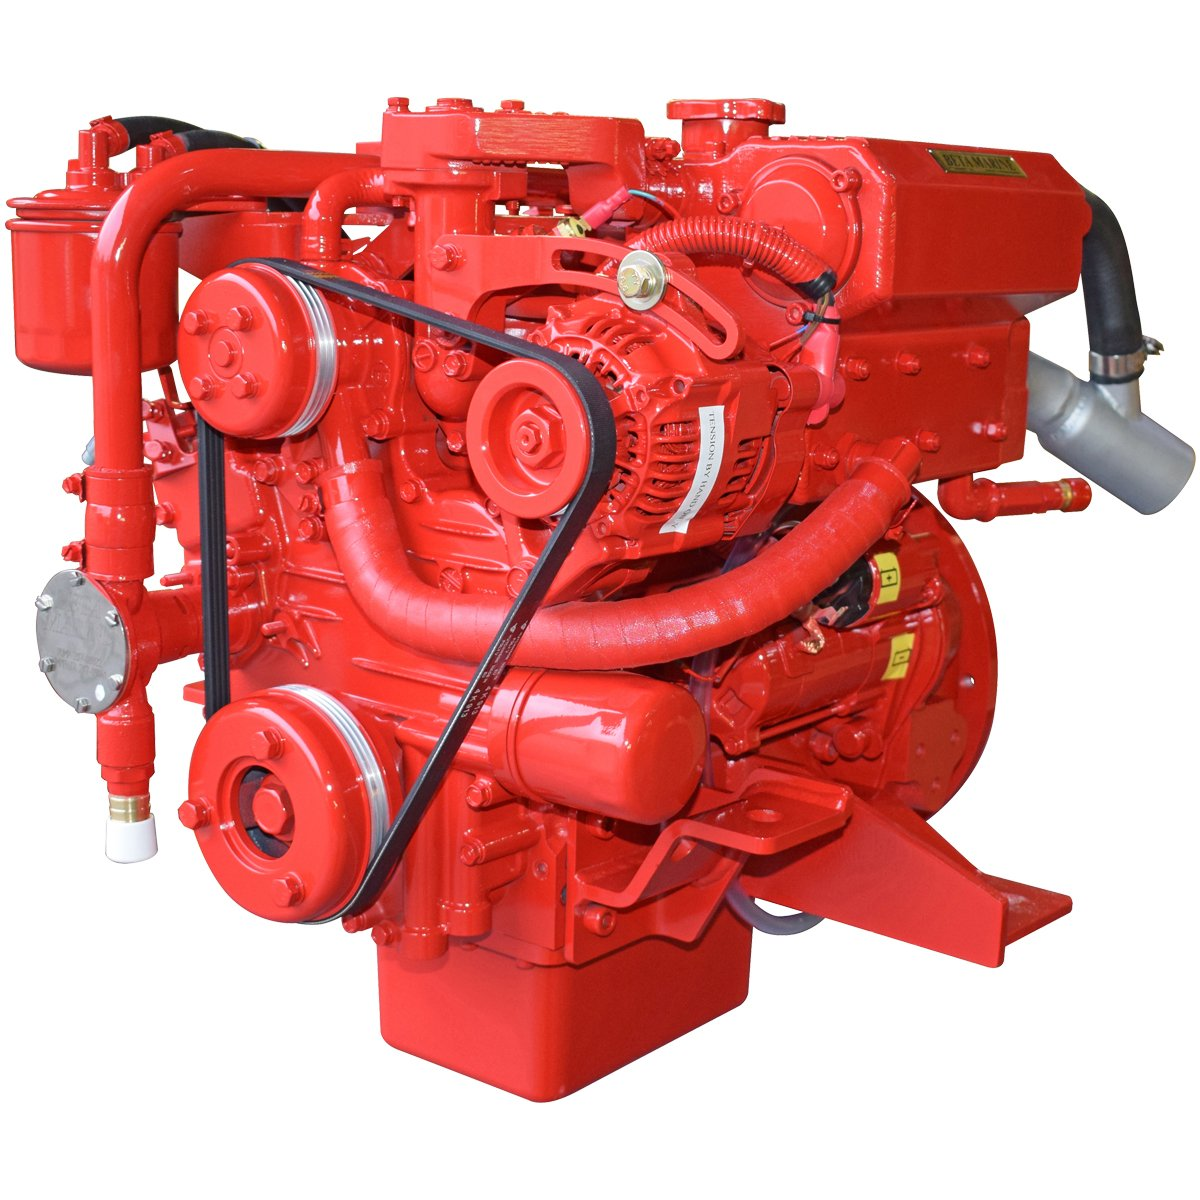 Beta Marine USA - marine diesel saildrive engines - Beta 20SD heat exchanger saildrive engine